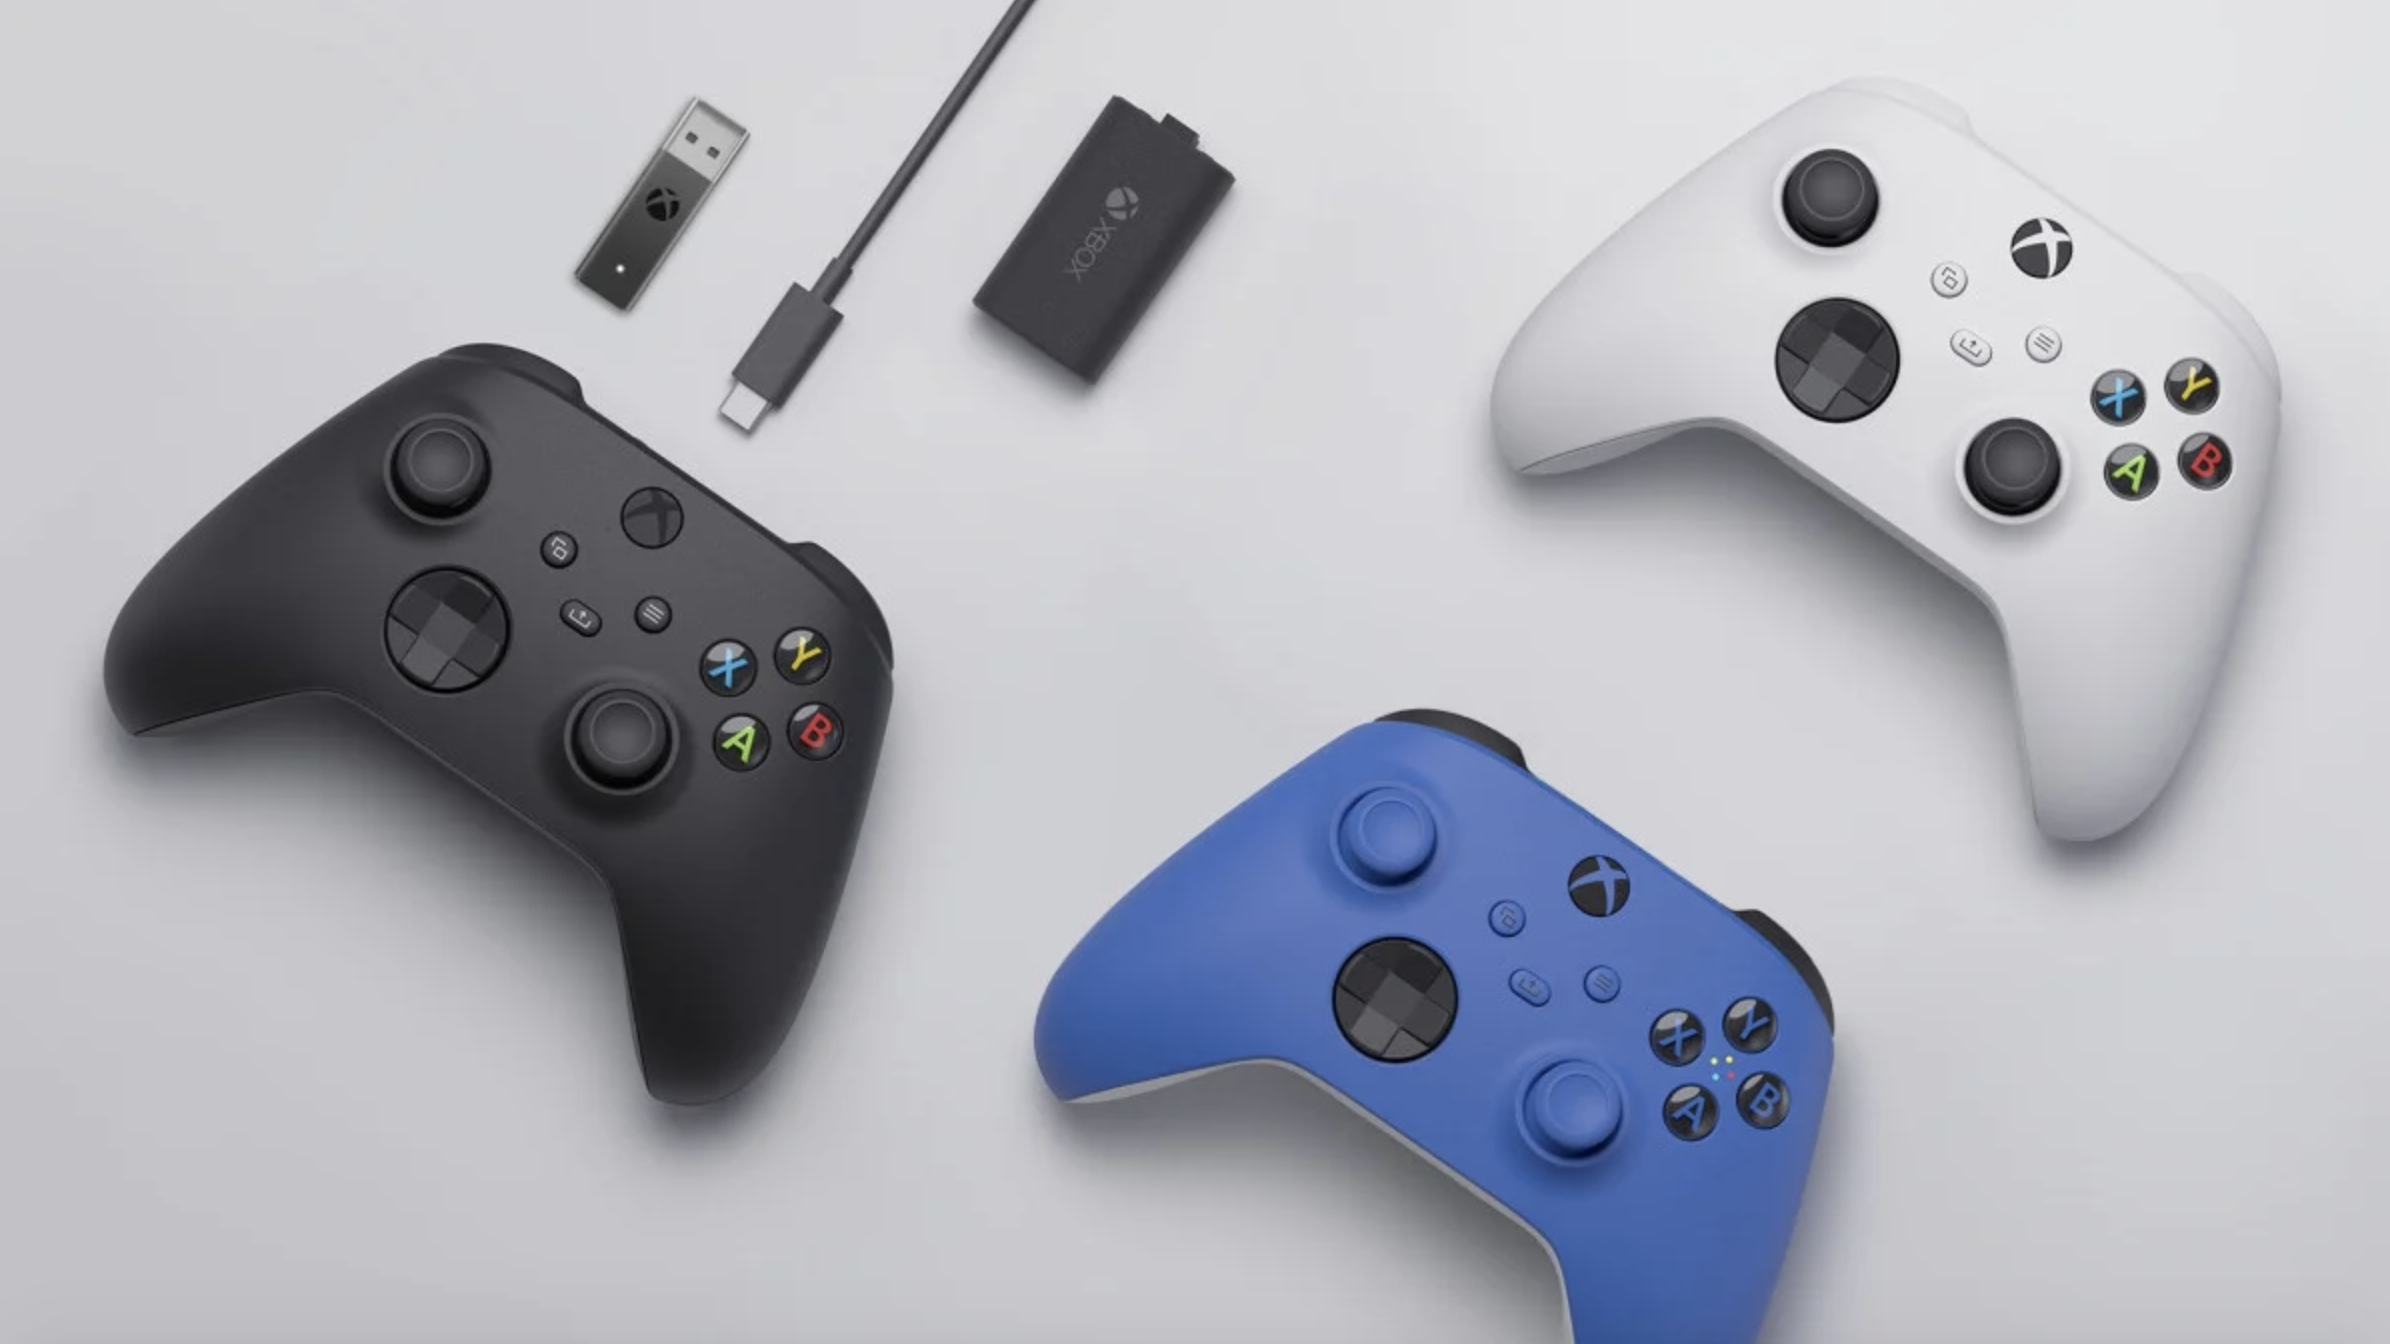 Here's where to buy accessories for your new Xbox Series X